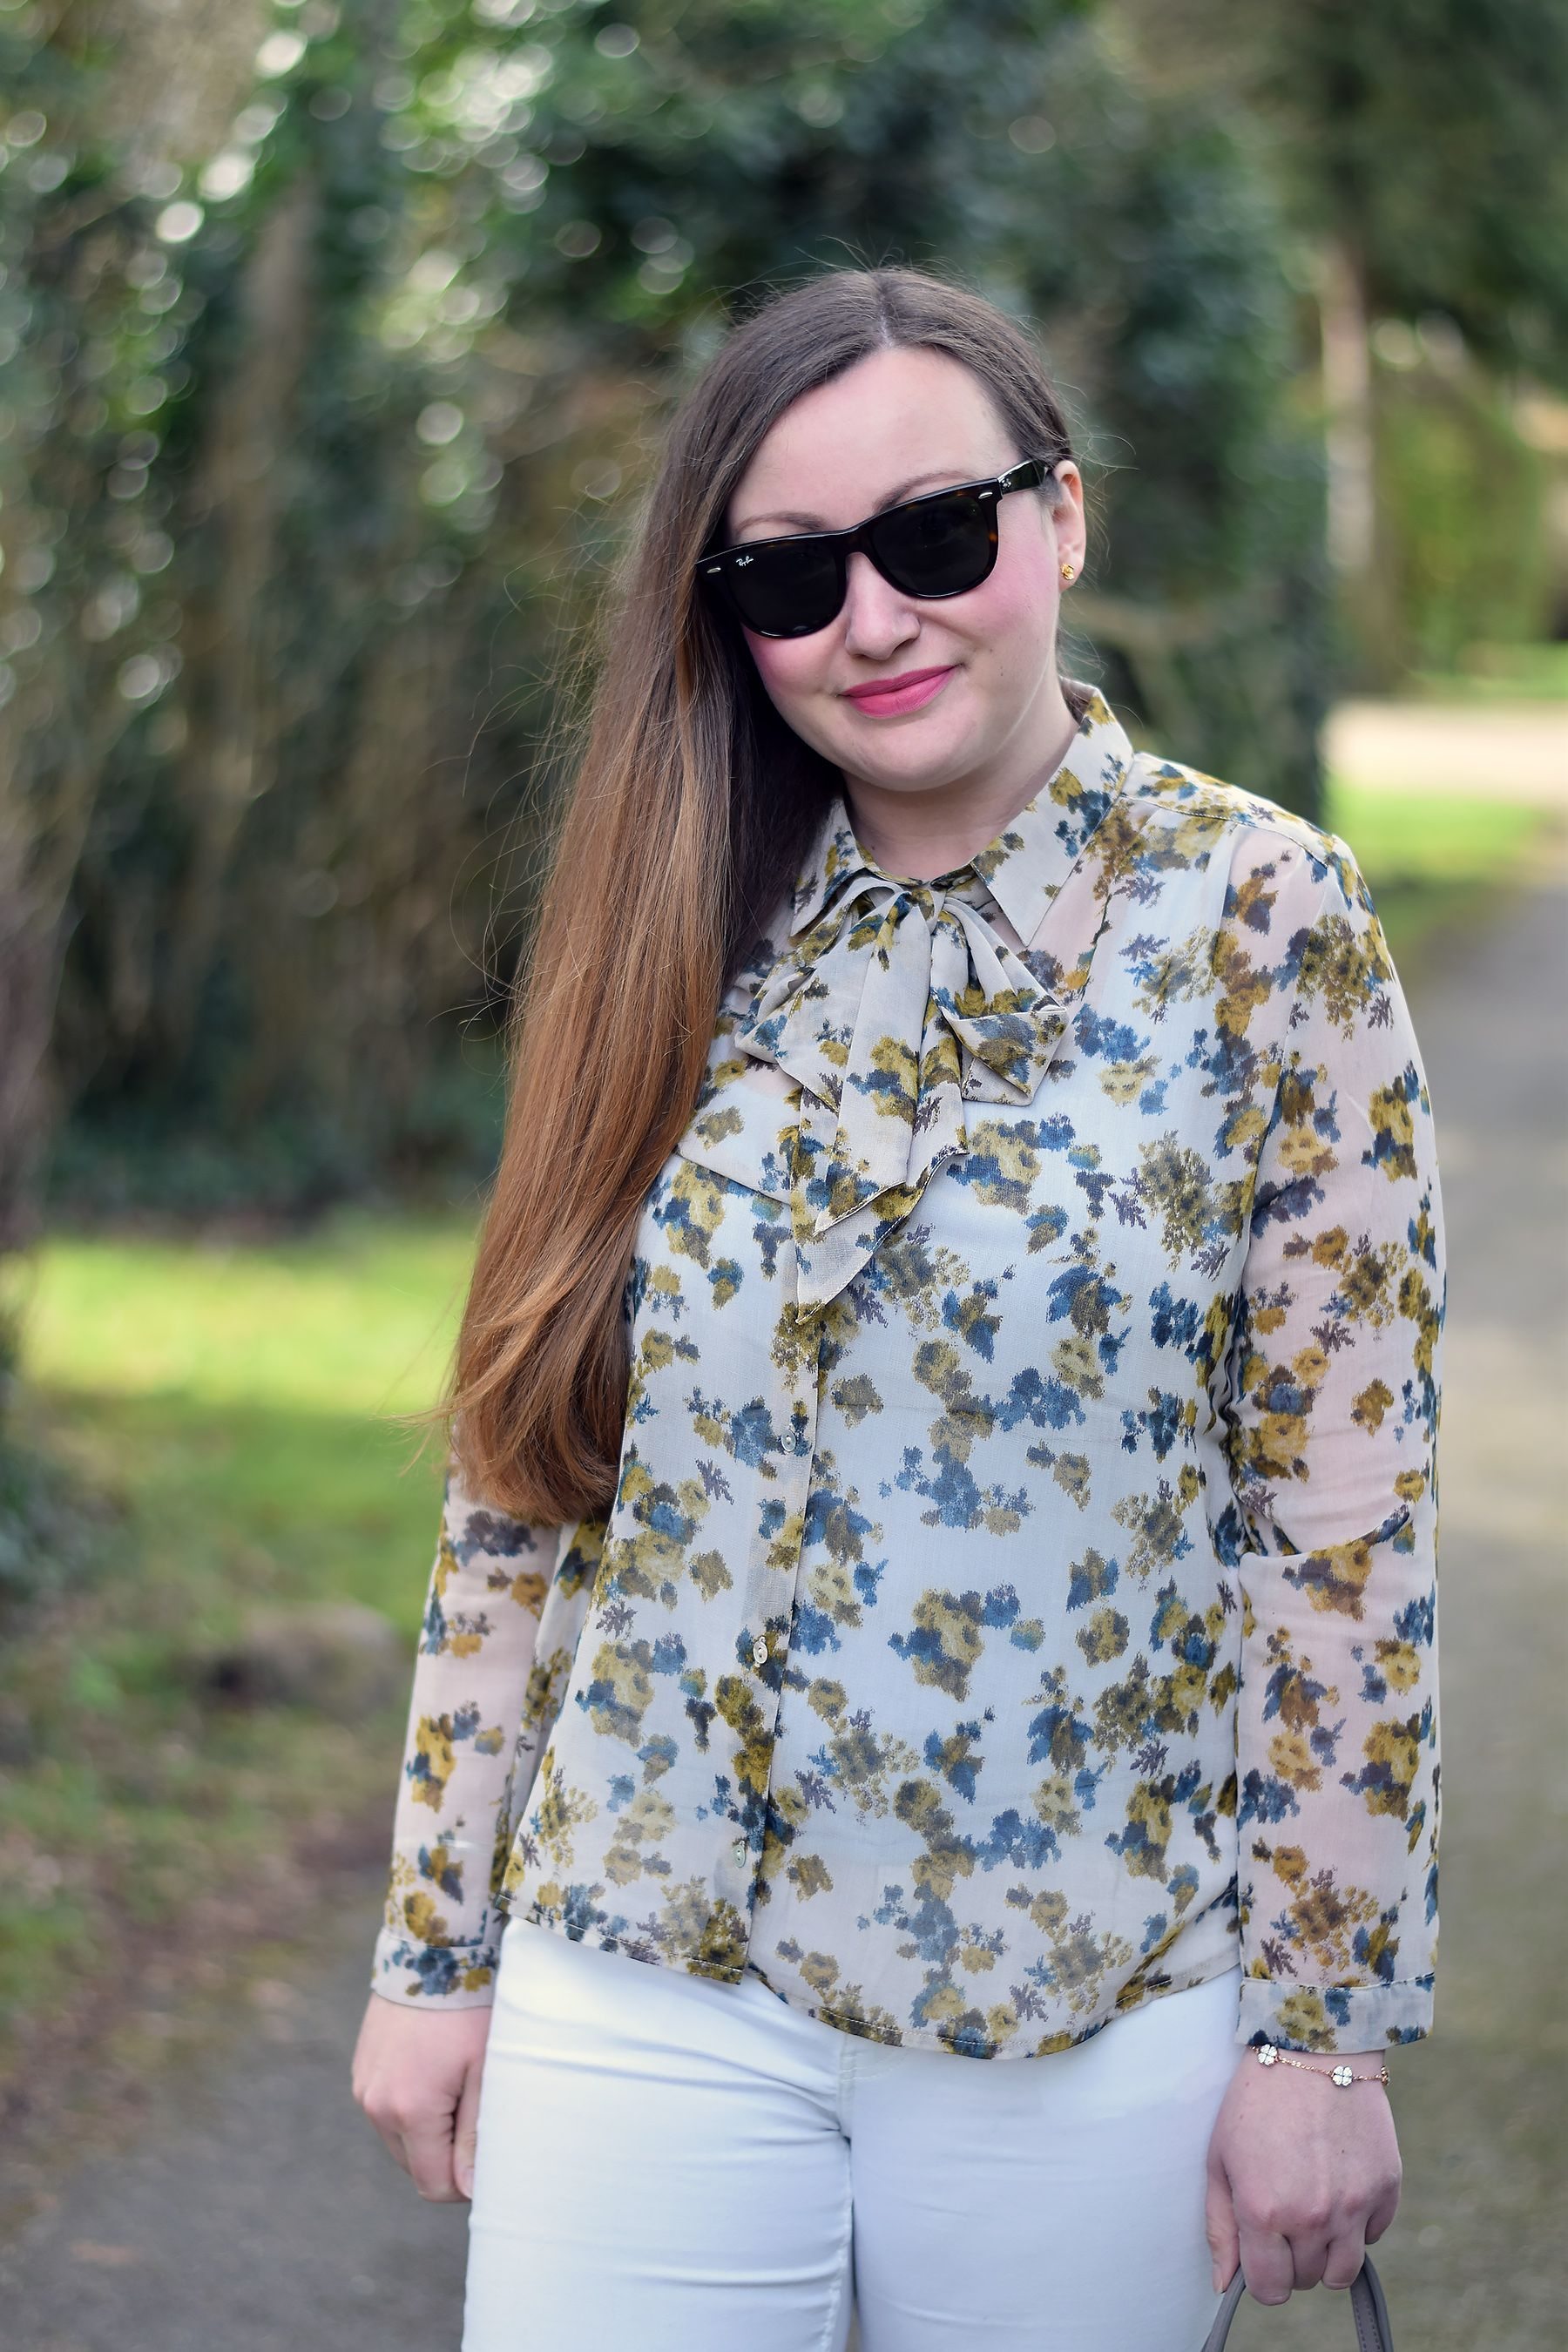 268300369cacd Fashion blogger  Jacquard Flower  styles our  Yellow Blue Flowers Blouse   with white jeans